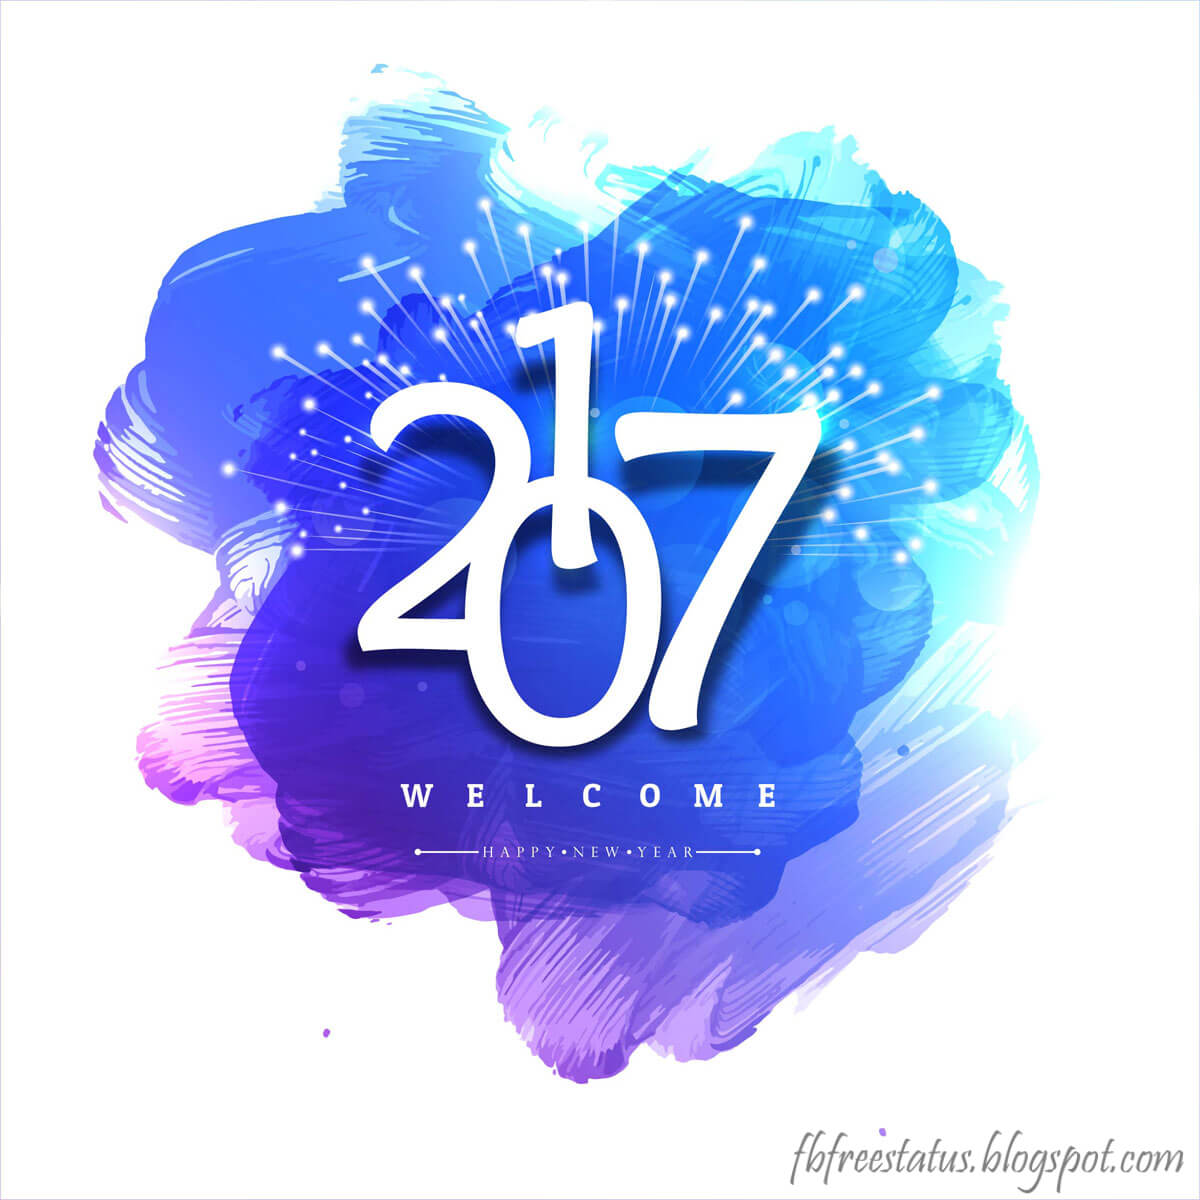 Happy New-Year images HD